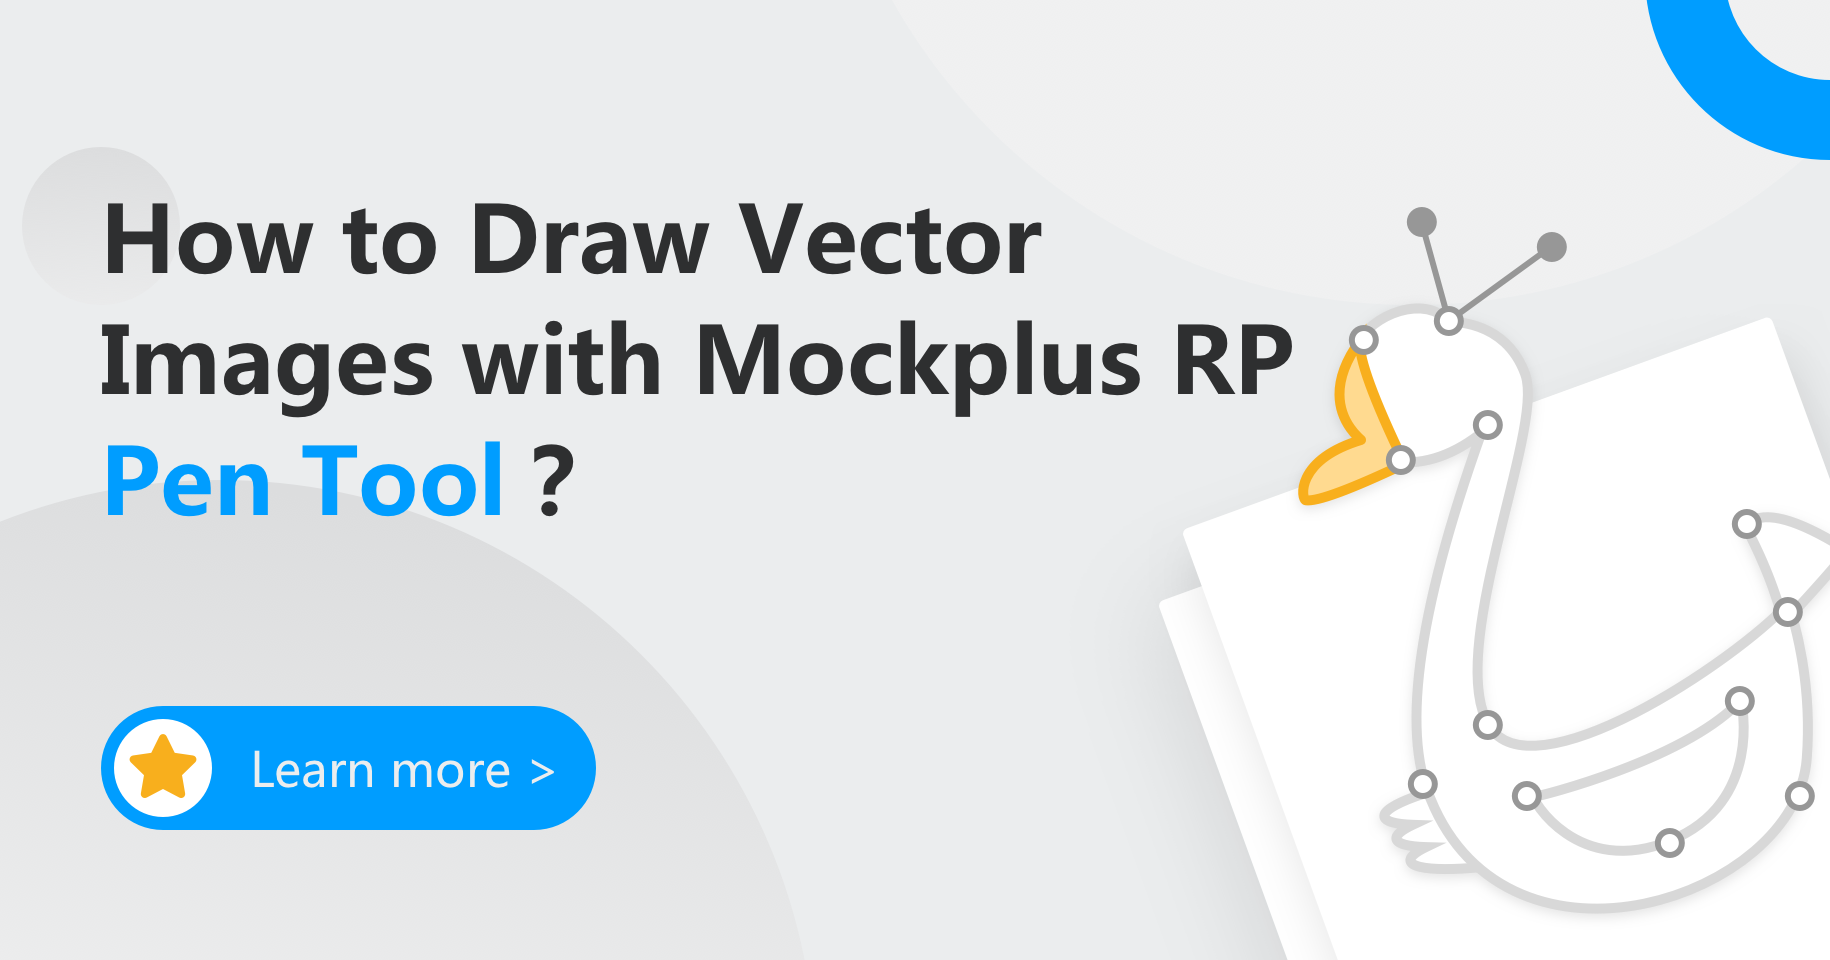 How to Draw Vector Images with Mockplus RP Pen Tool?